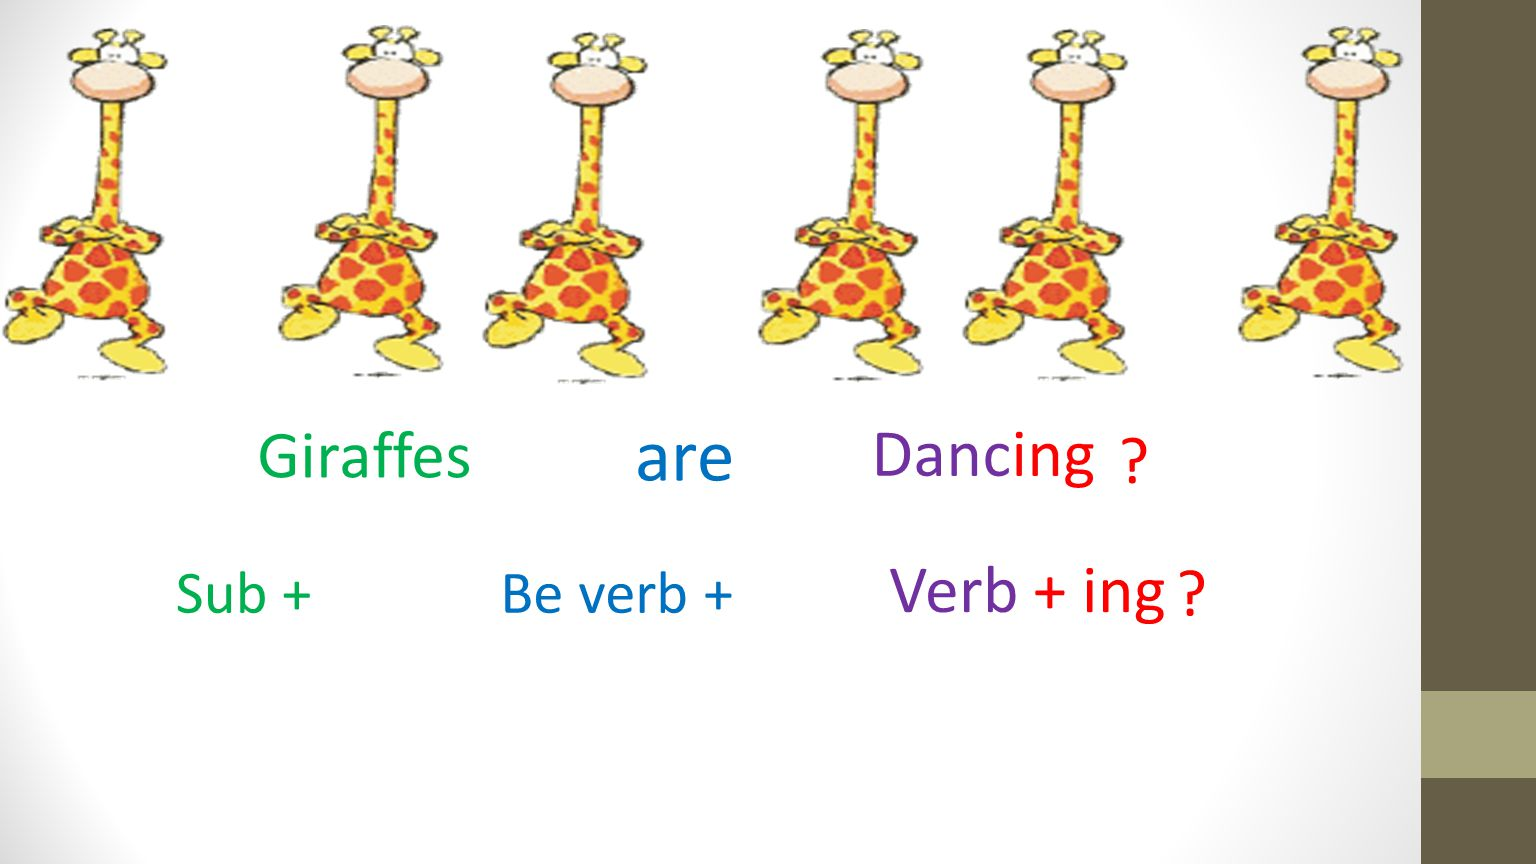 Giraffes Sub +Be verb + Verb + ing are Dancing